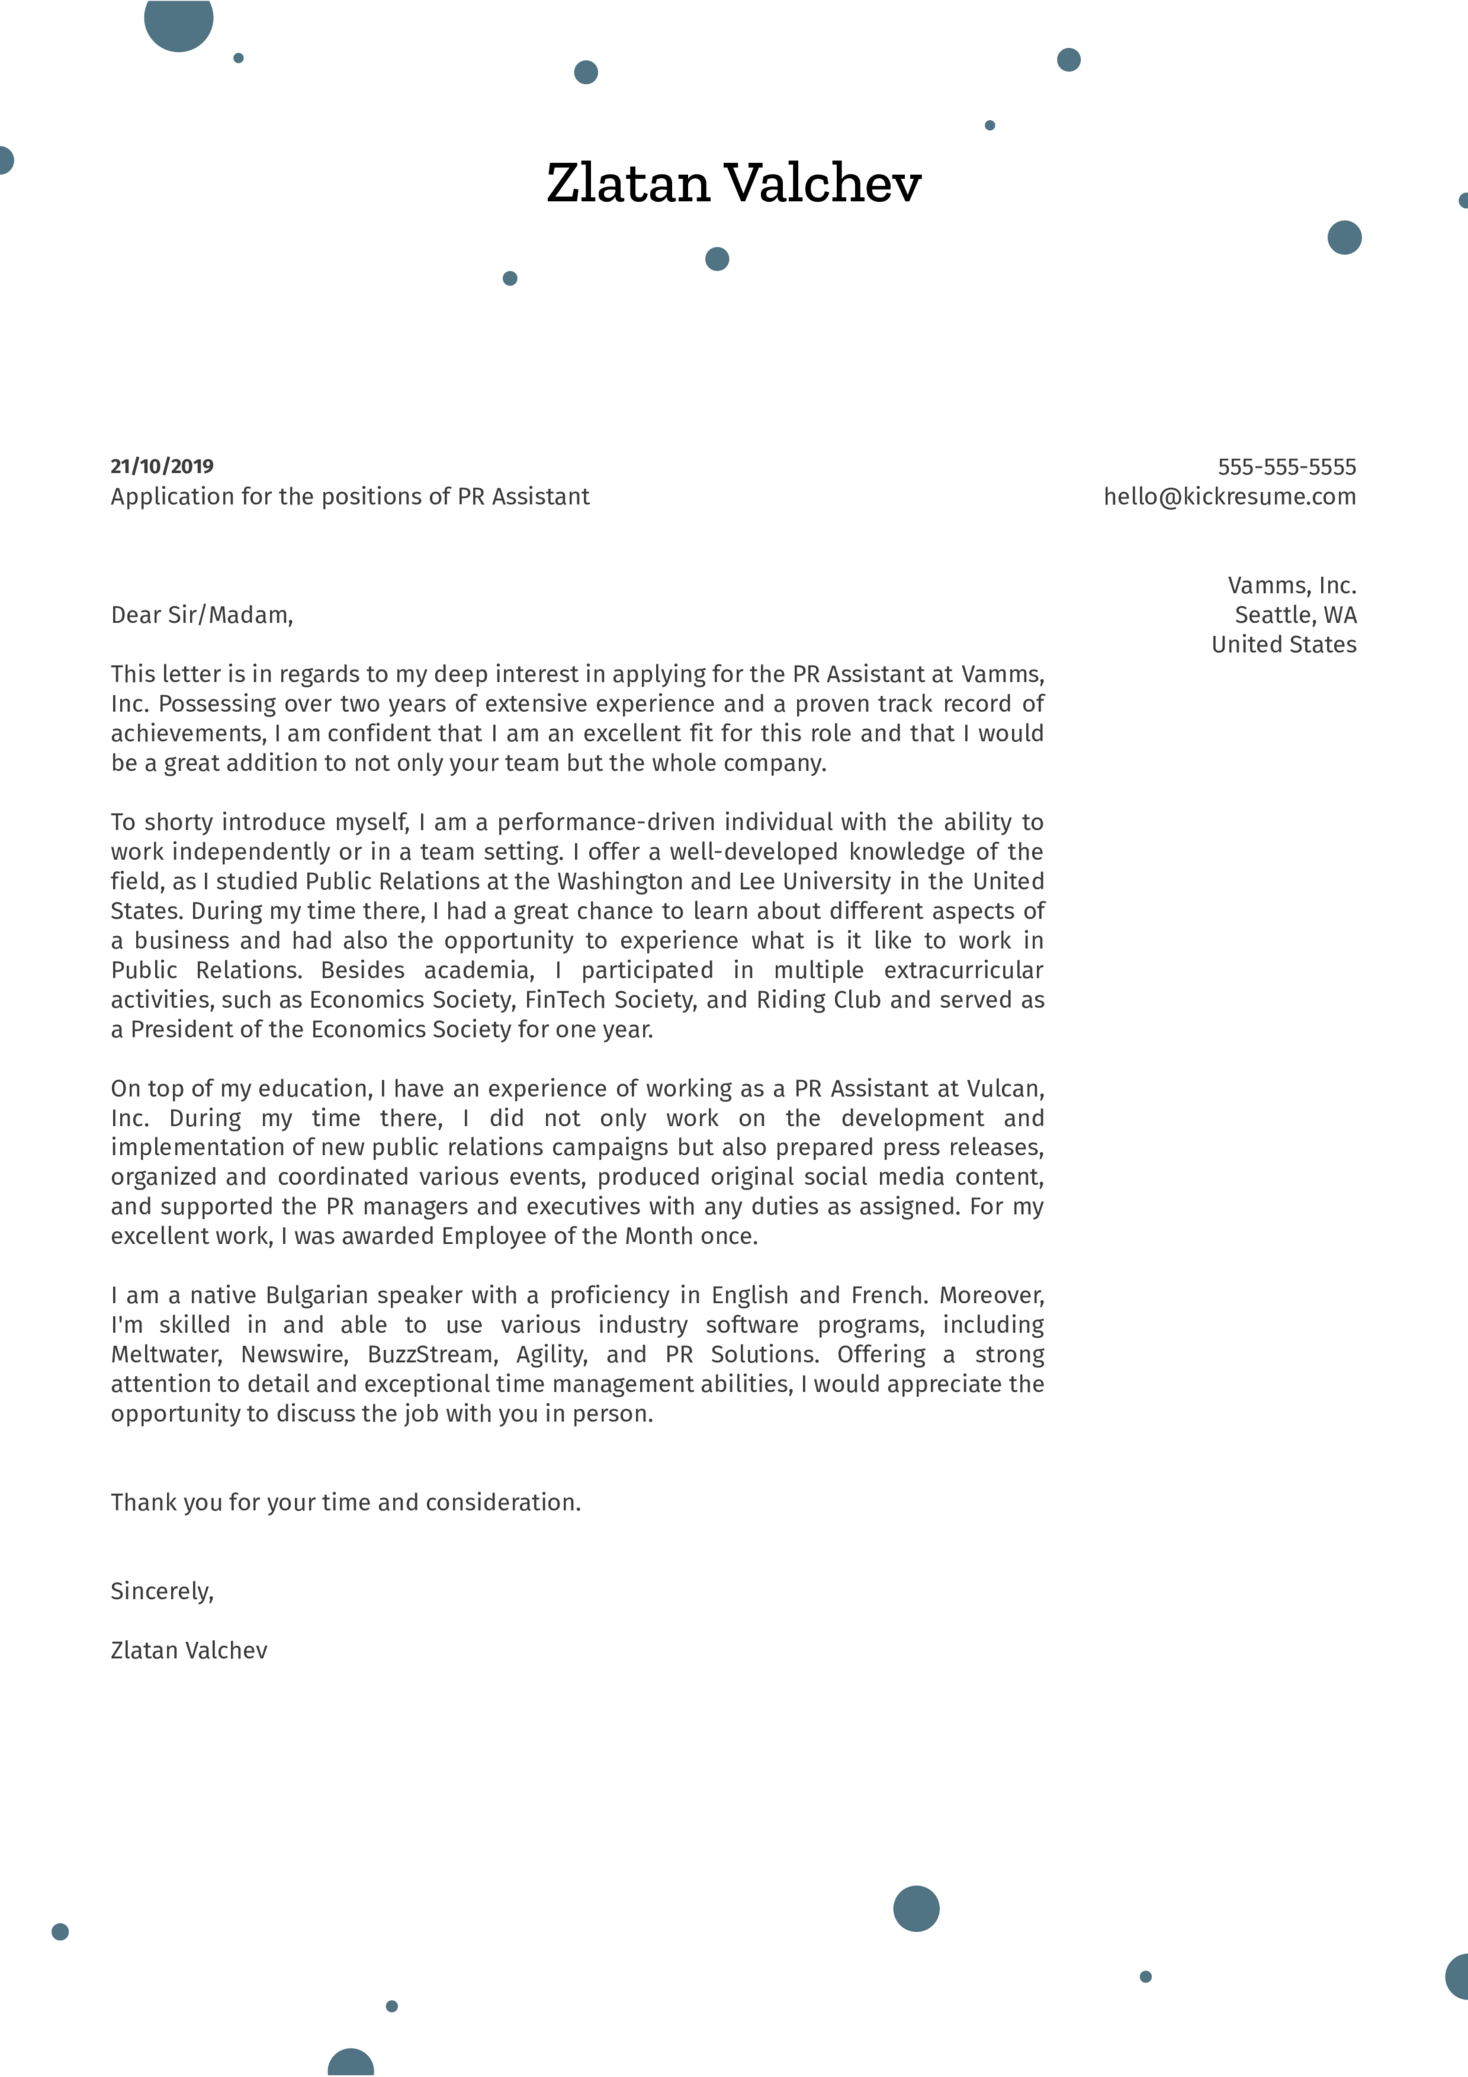 PR Assistant Cover Letter Example